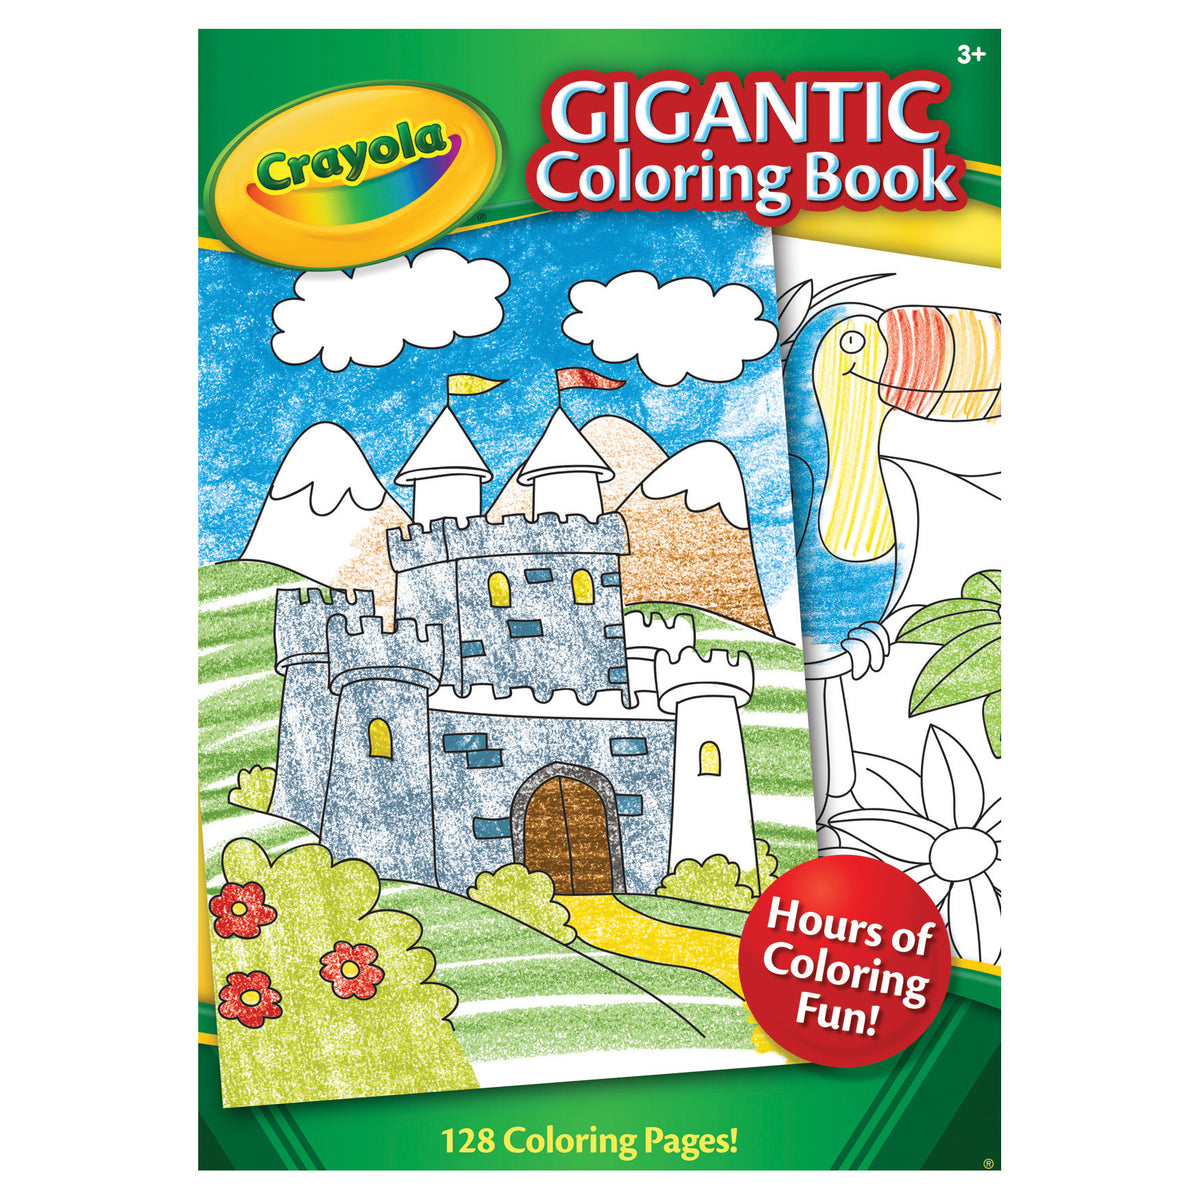 GIGANTIC COLORING BOOK 128PG | CRAYOLA | Toyworld Frankston